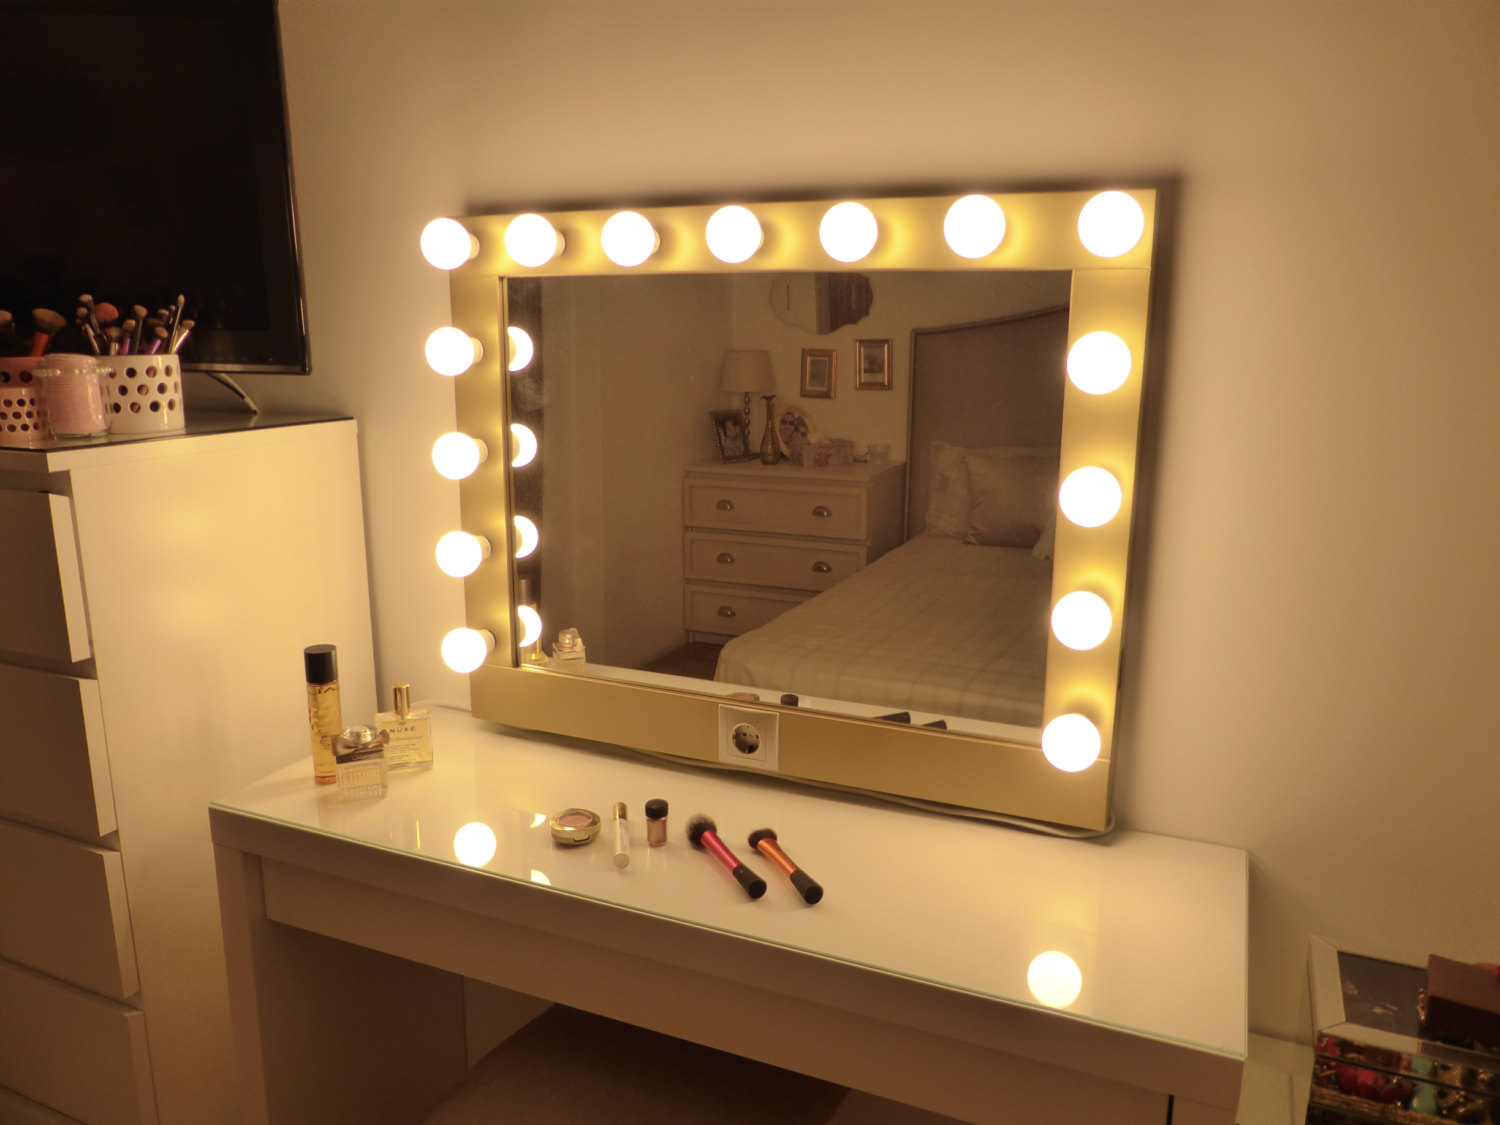 Top 10 Best Free Standing Vanity Mirror With Lights Comparison